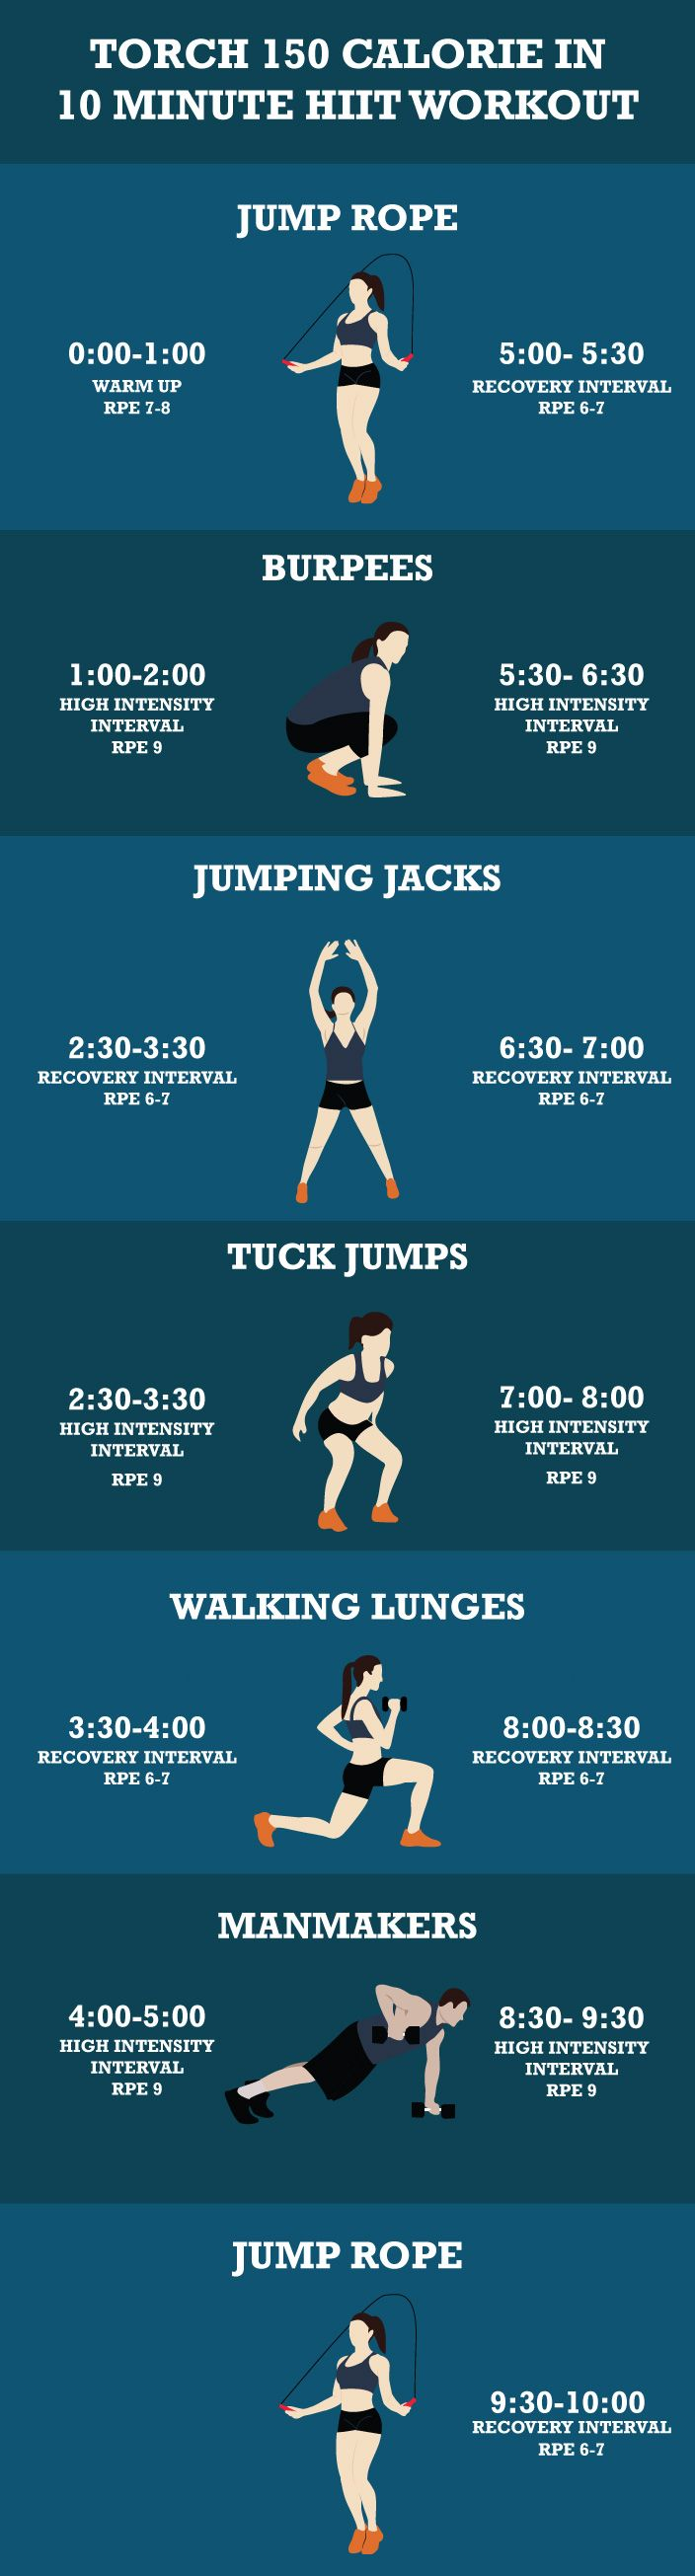 Torch 150 Calorie In 10-Minute HIIT Workout